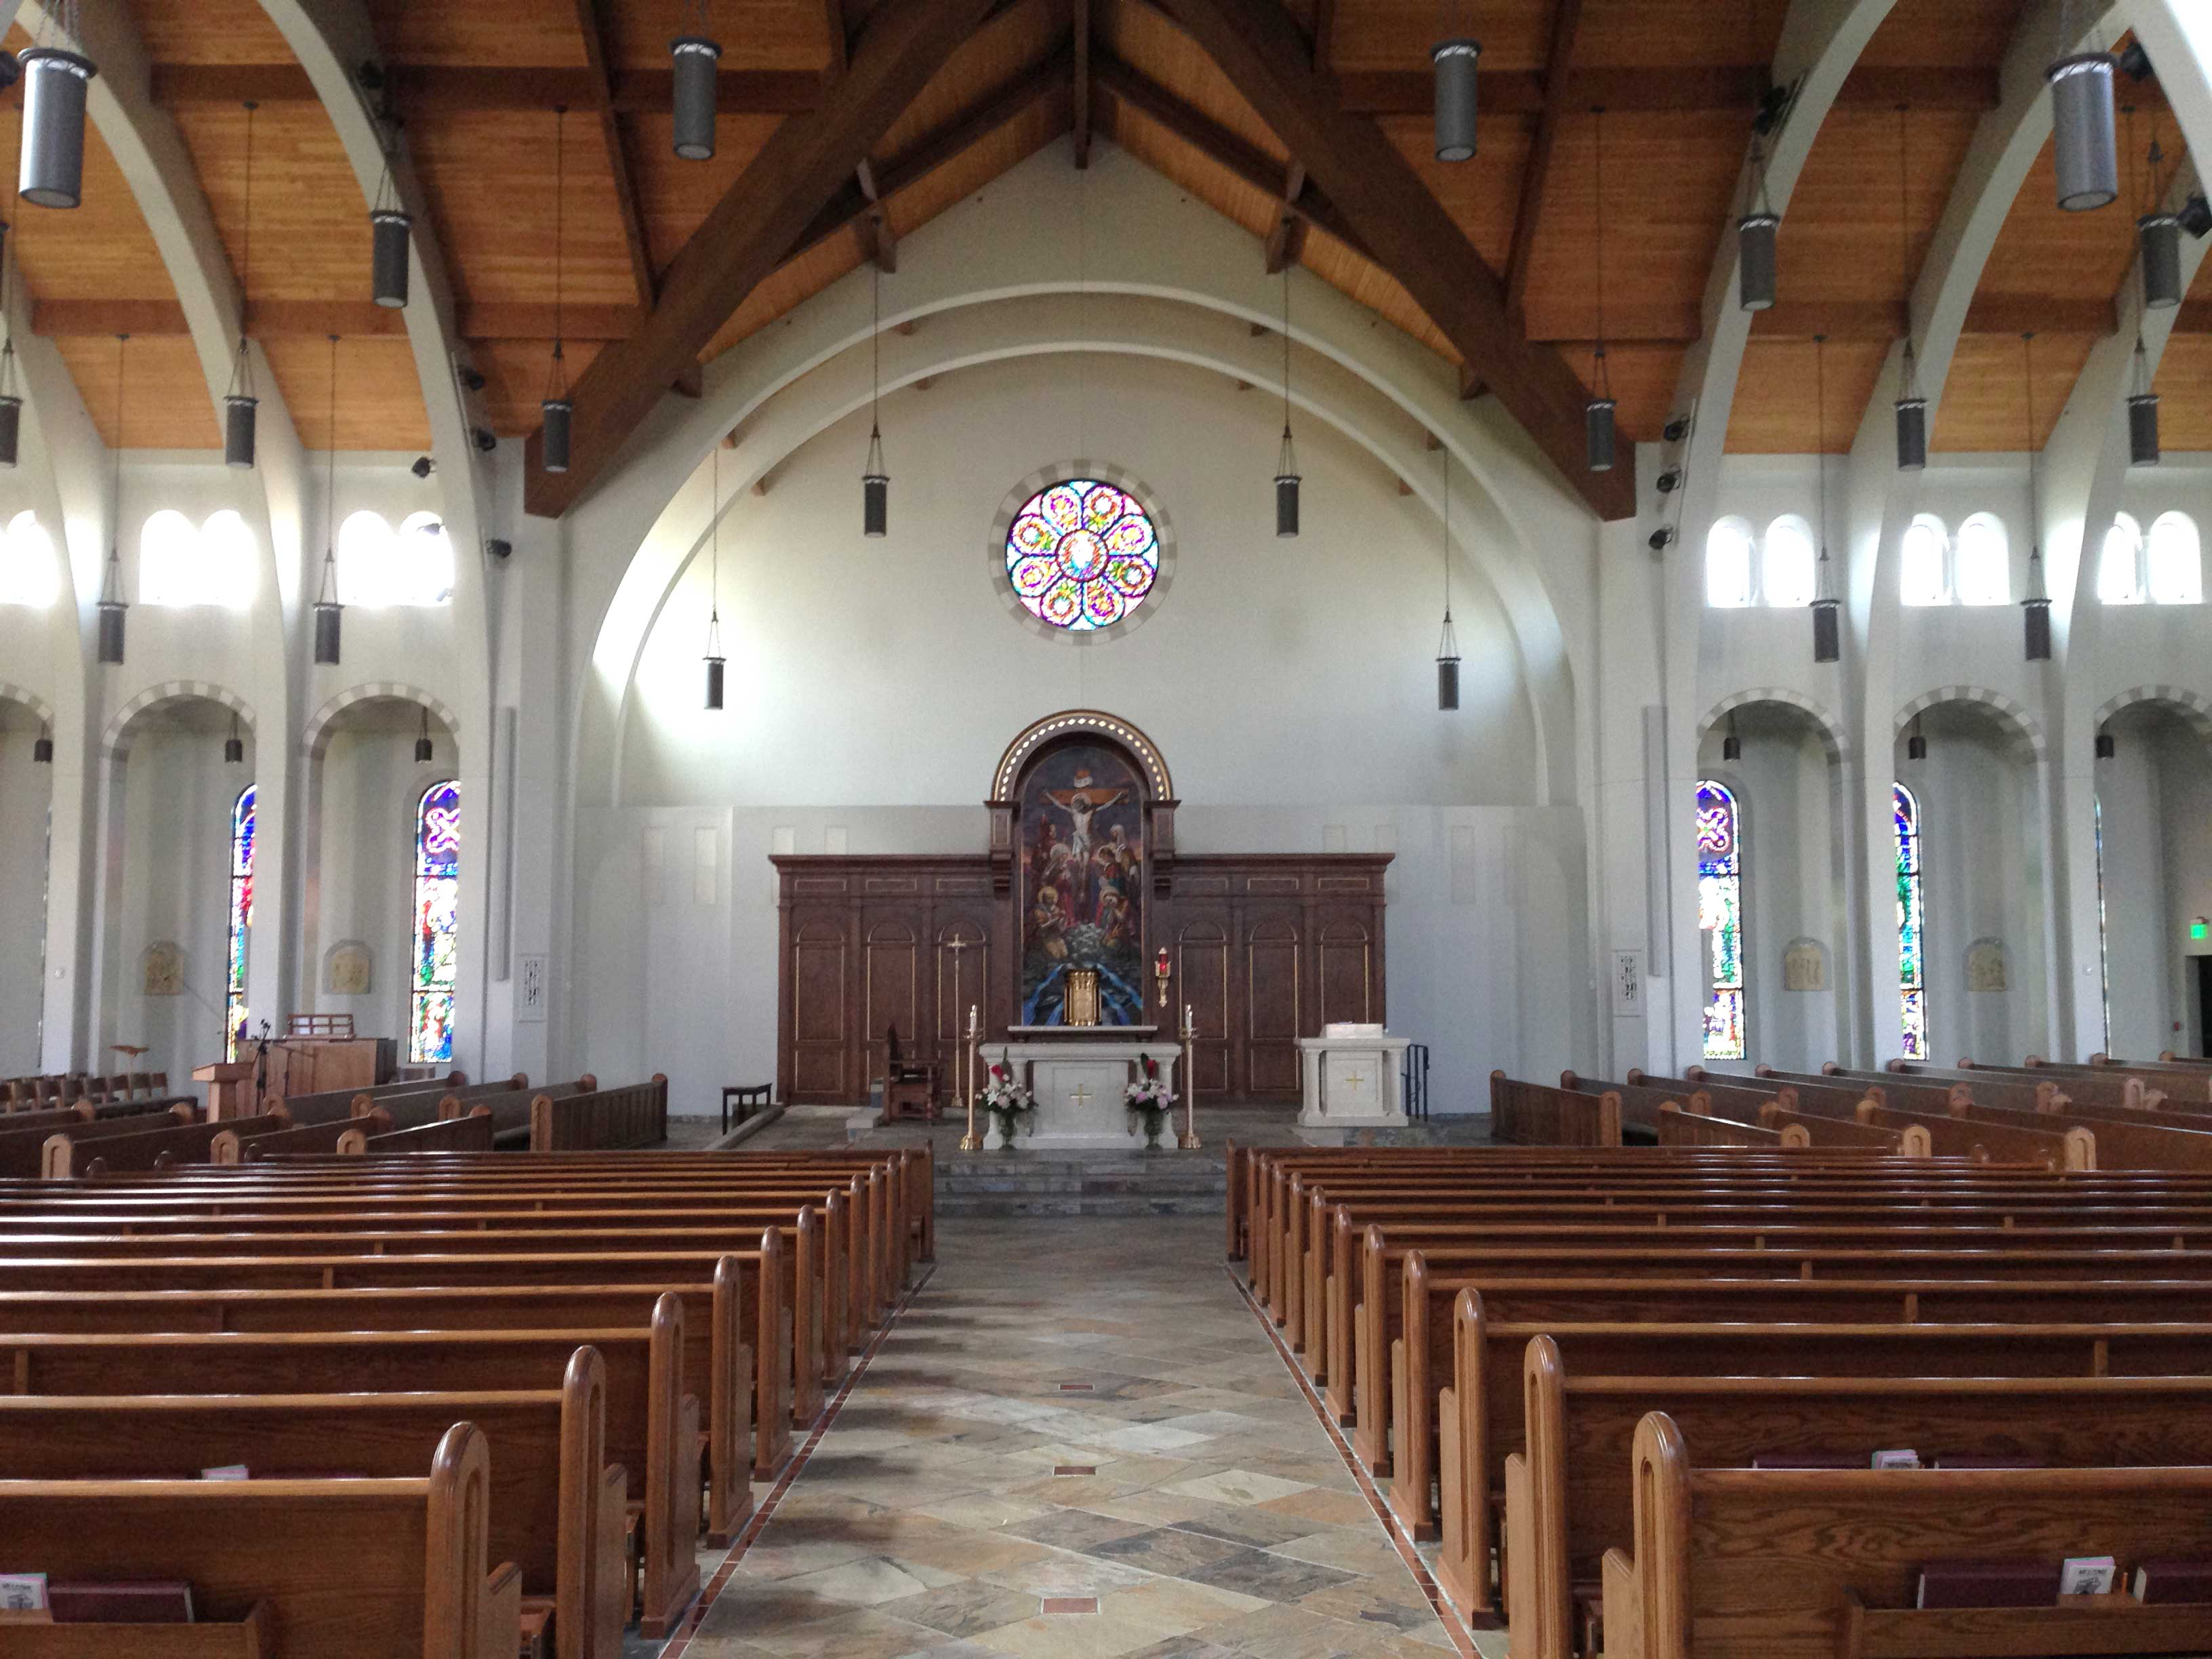 INTERIOR—View of the interior of St. Mary, Joplin, June 15, 2016. (Photo by Glenn Eckl)